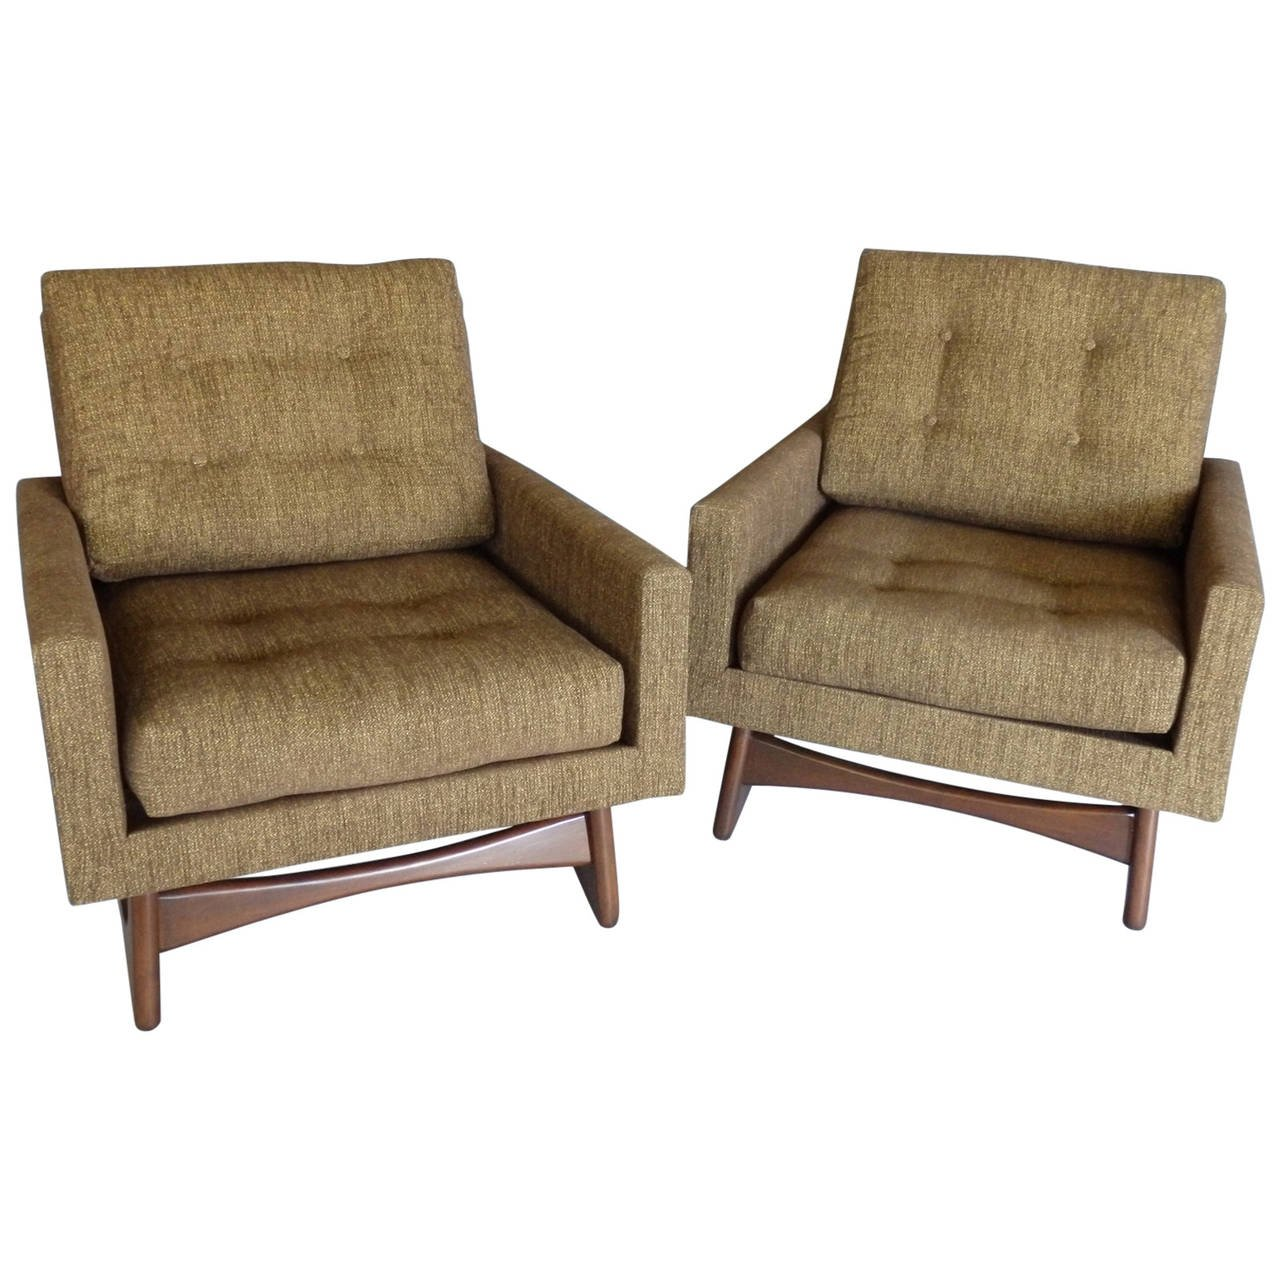 adrian pearsall lounge chair mesh pool chairs pair of tom gibbs studio 2810462 l jpeg